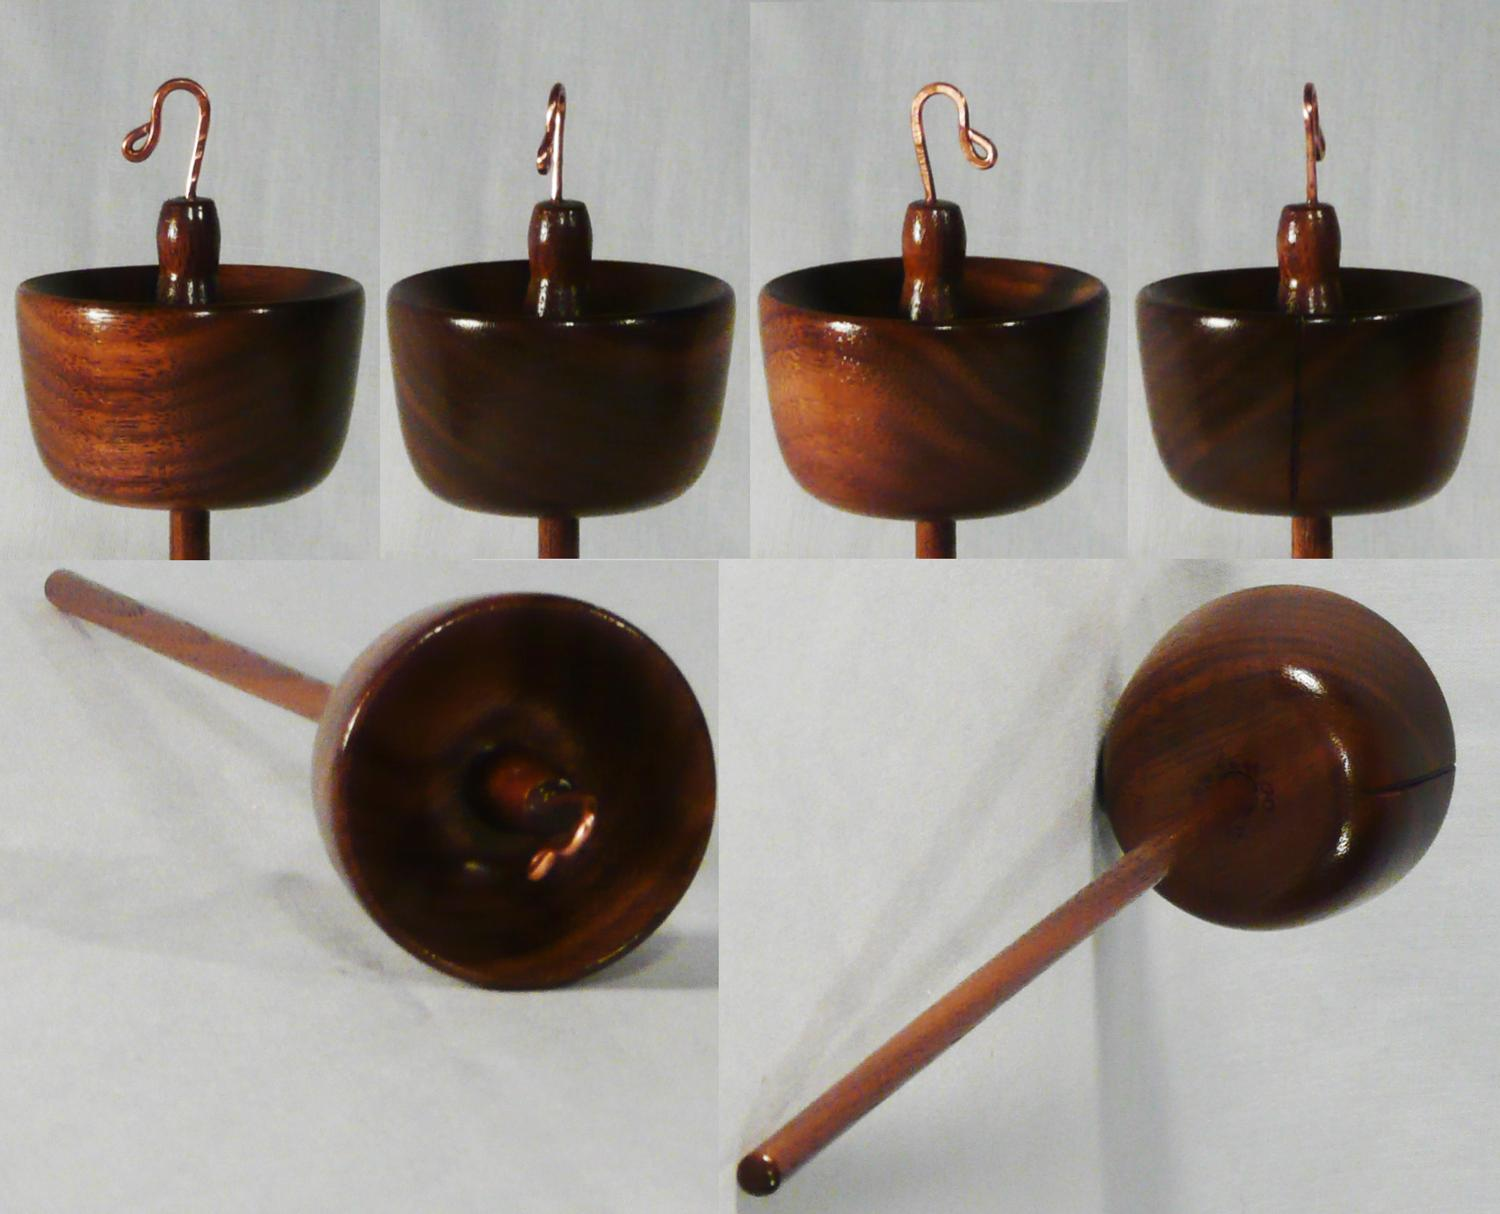 Hand turned high whorl drop spindle by Cynthia D. Haney of Walnut wood.